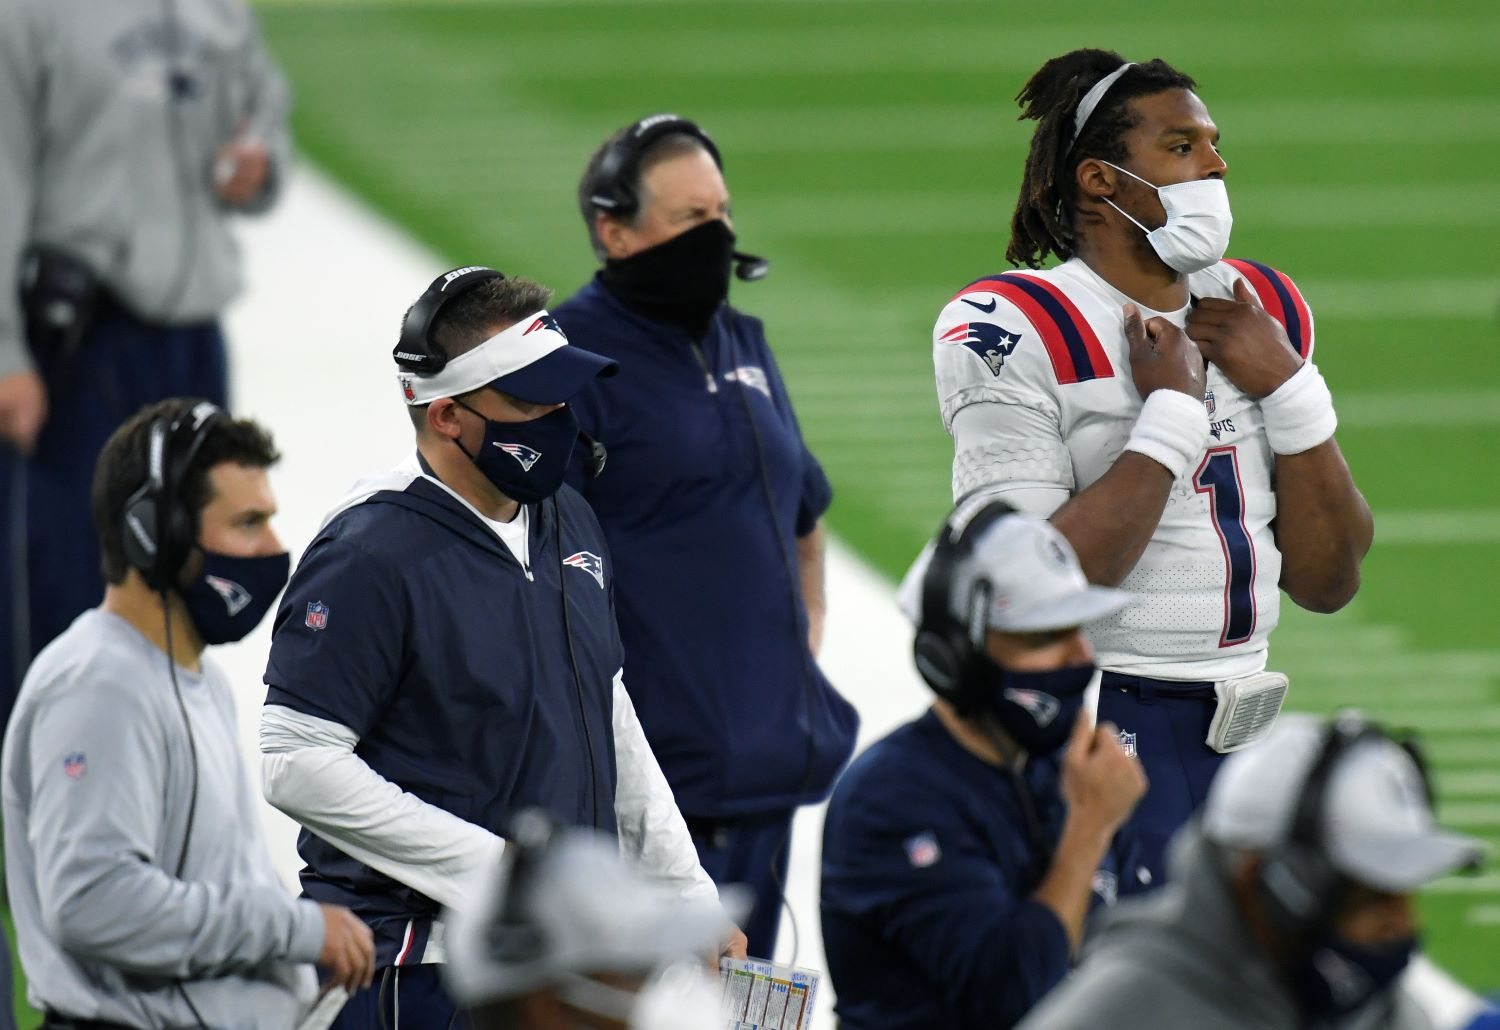 Bill Belichick has cost Cam Newton a shot at $1 million by failing to surround him with enough talent, which has left the Patriots in a position to miss the playoffs for the first time since 2008.